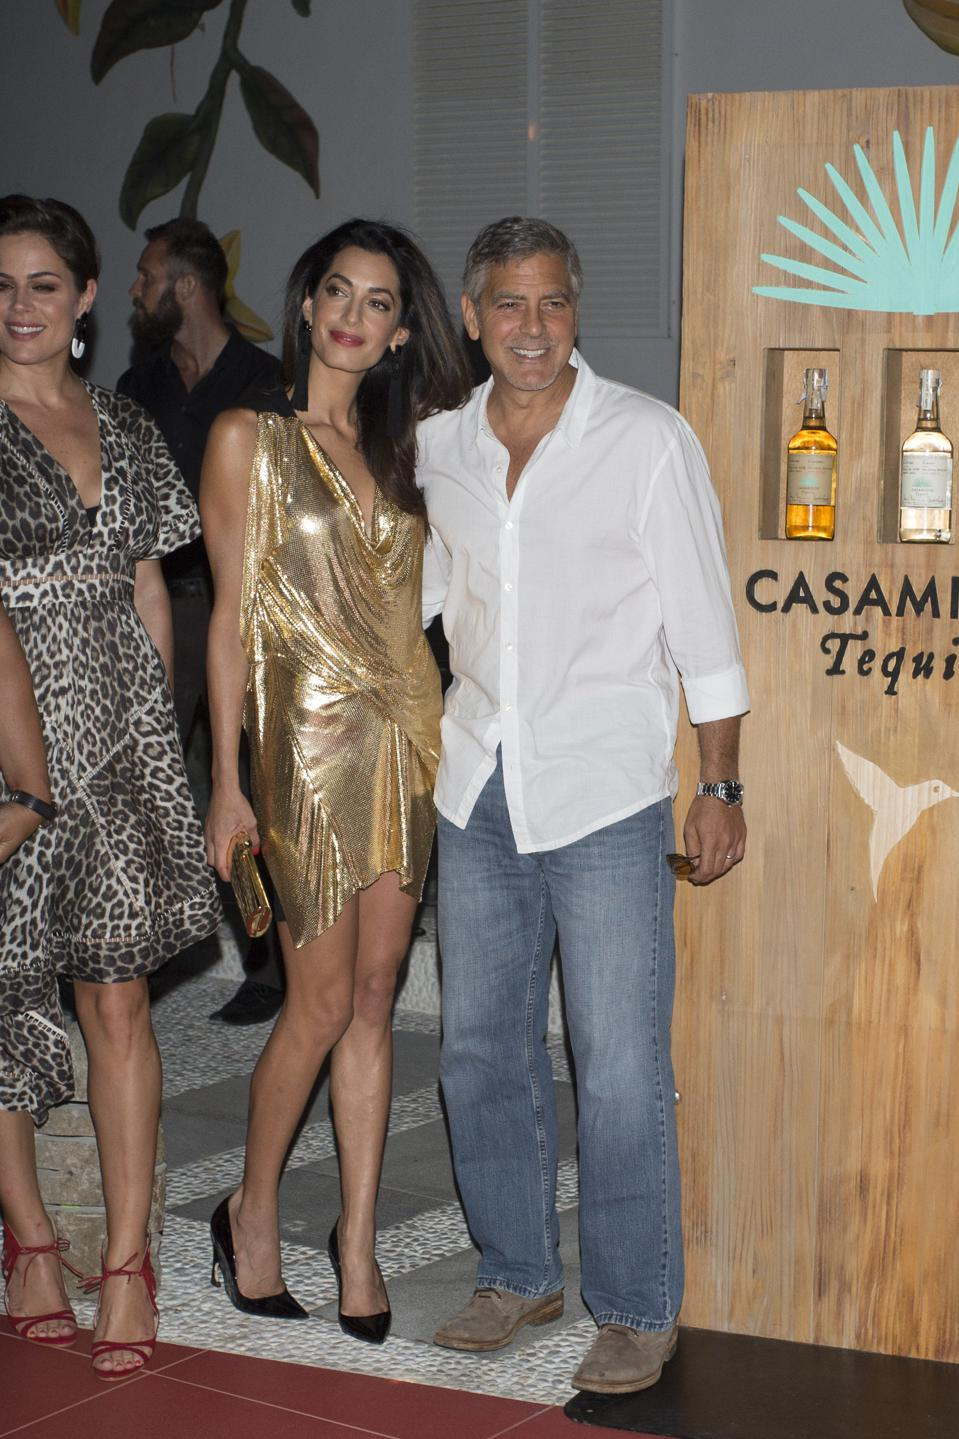 Arrivals At The Launch Of Casamigos Tequila